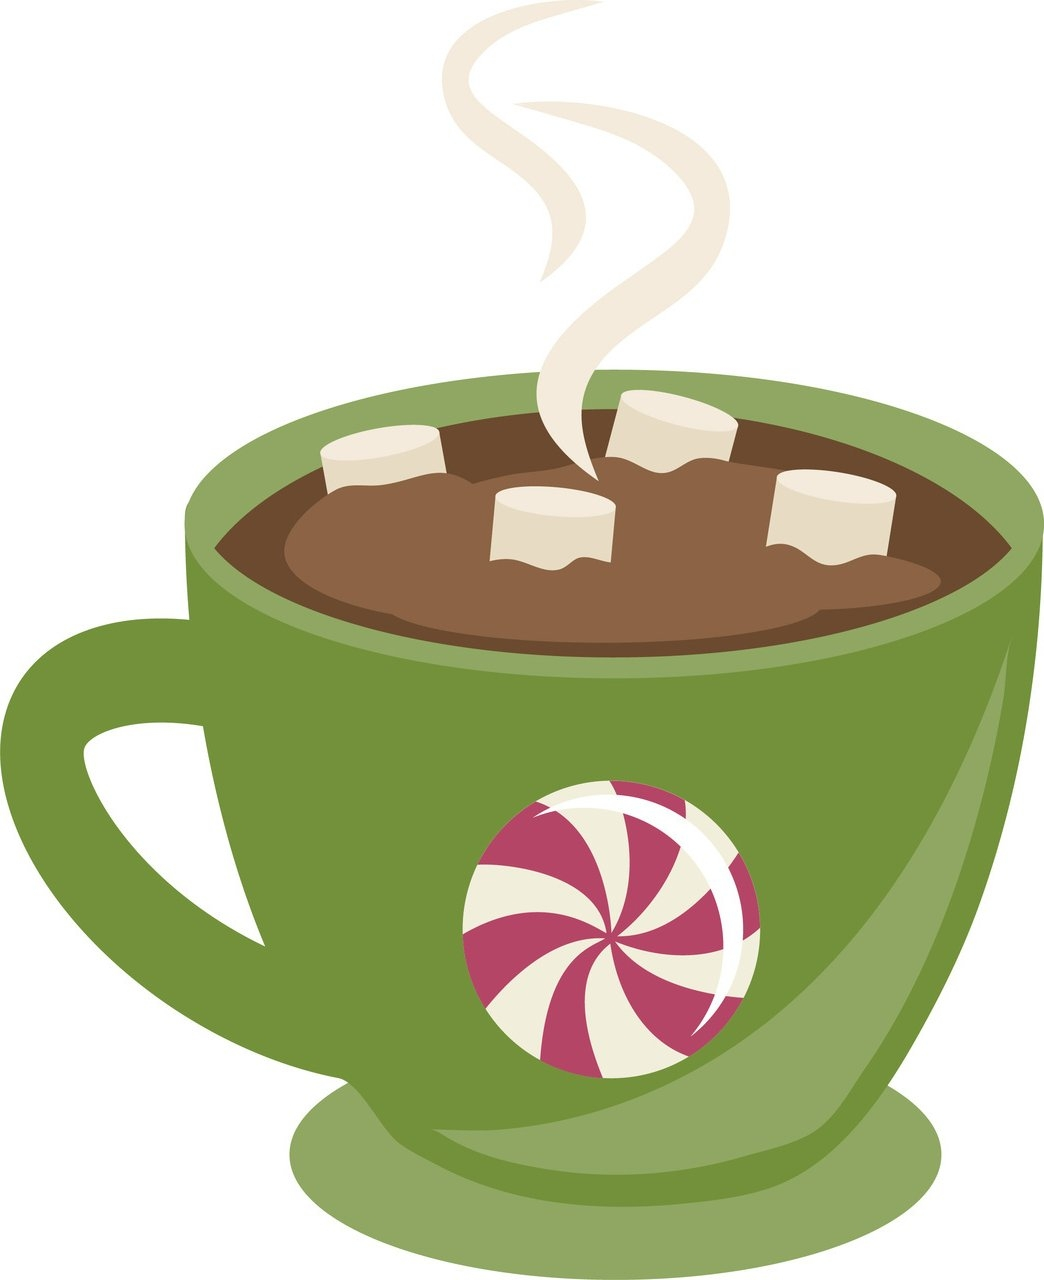 Cocoa clipart. Awesome hot design digital